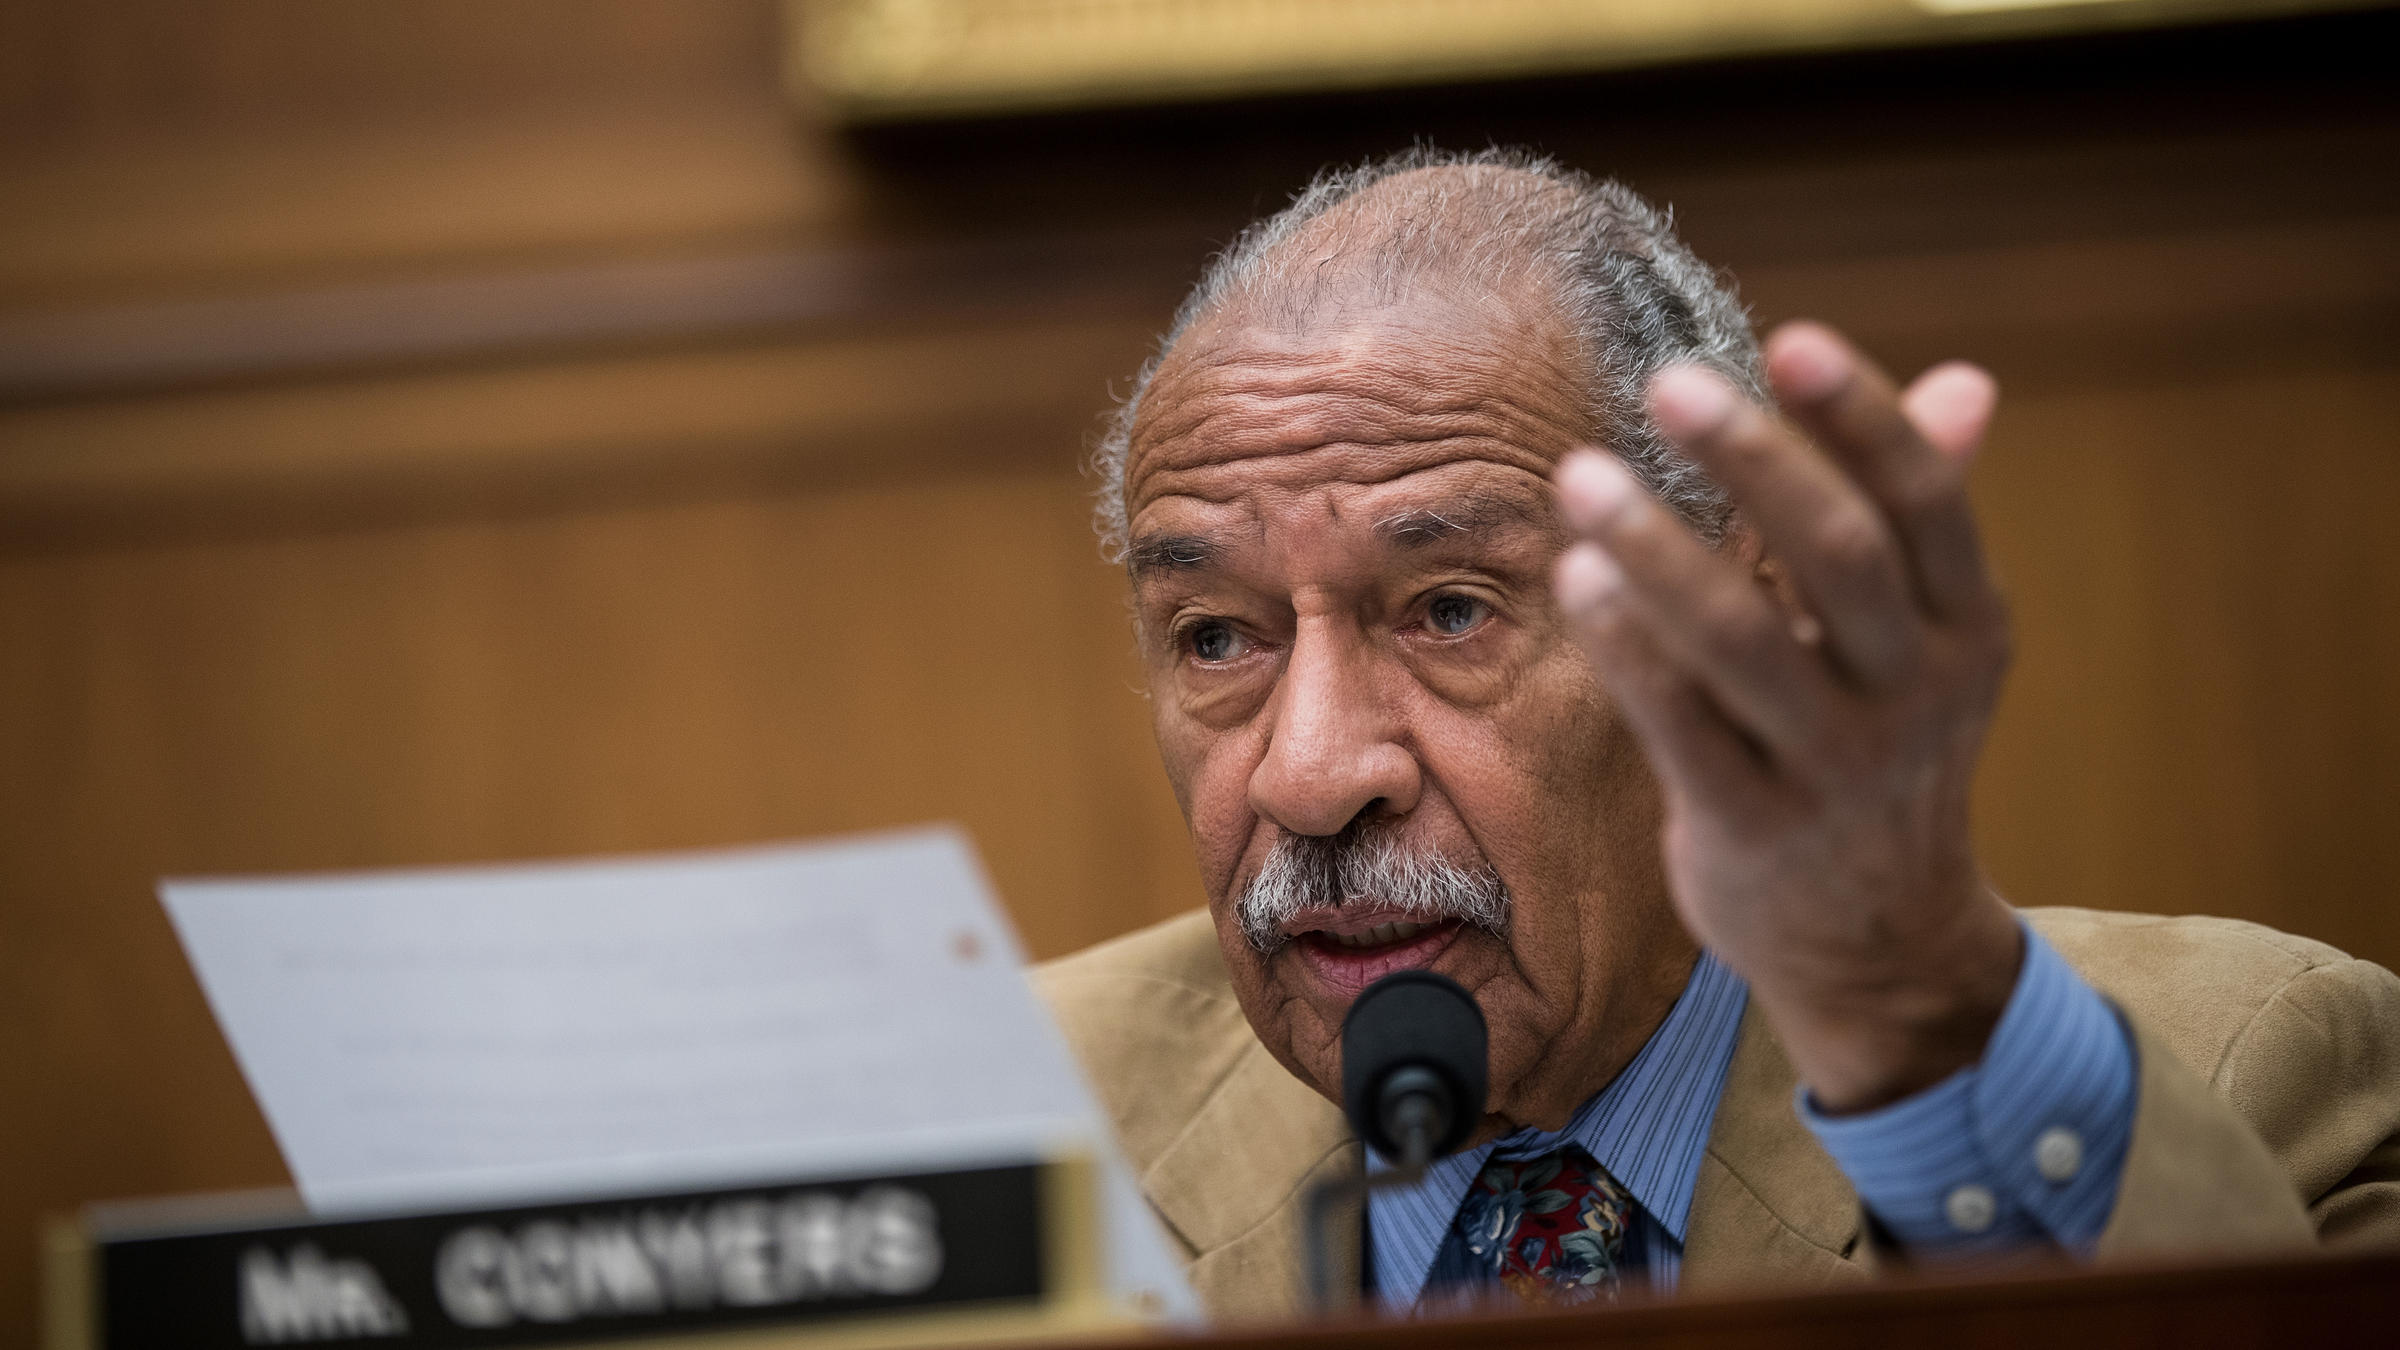 Rep. John Conyers Deserves 'Due Process': Nancy Pelosi